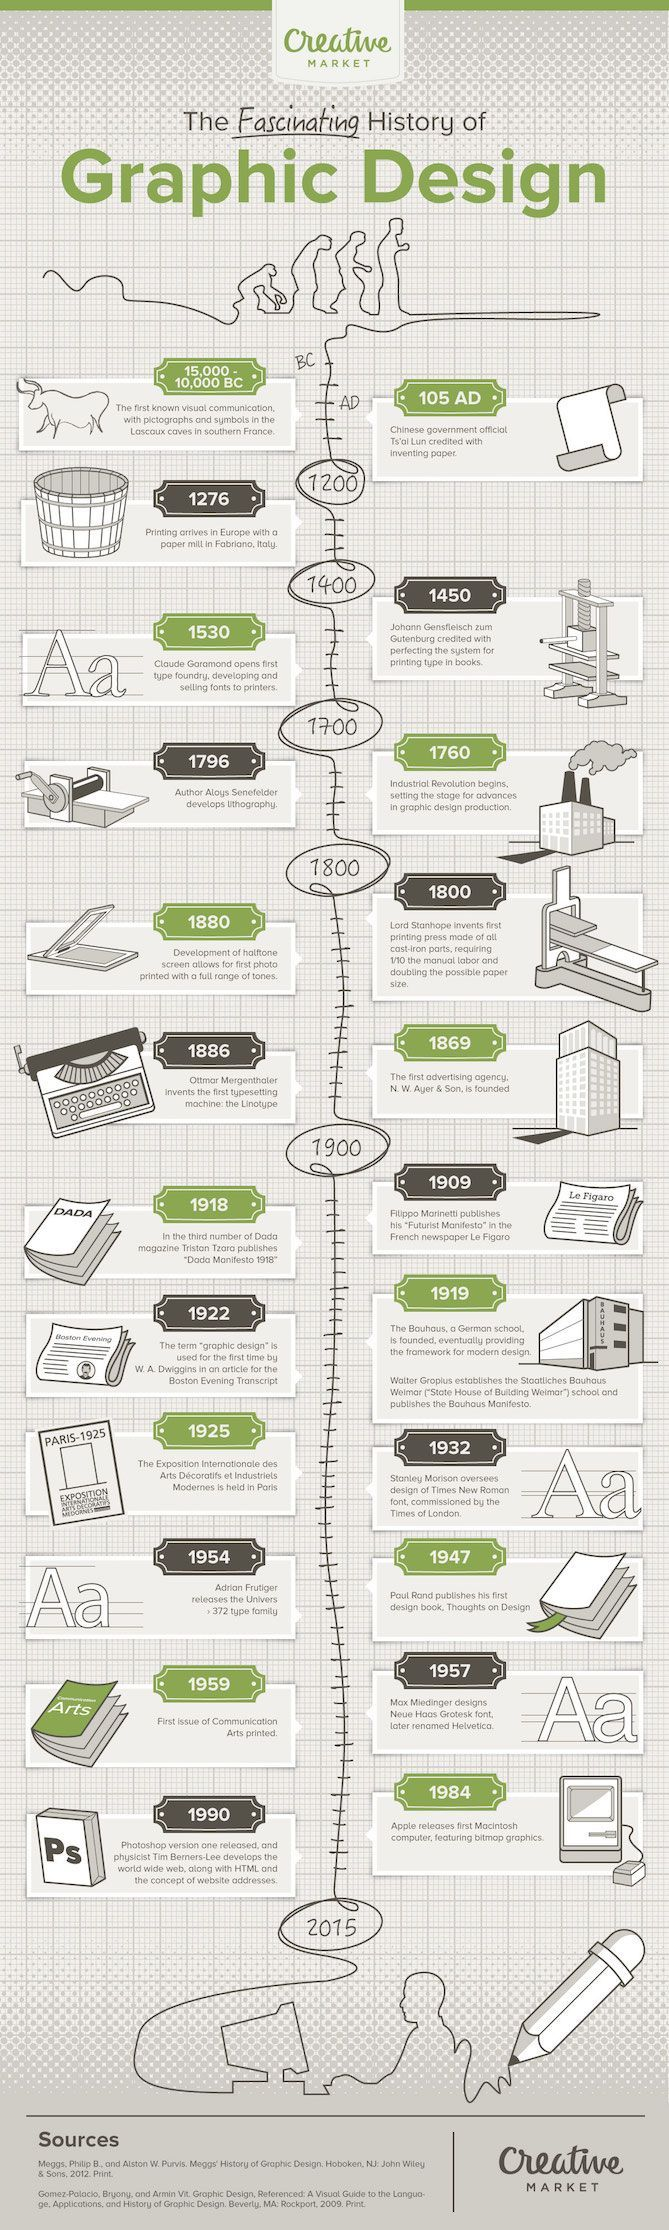 Photo of 23 Key Moments in the History of Graphic Design [Infographic]